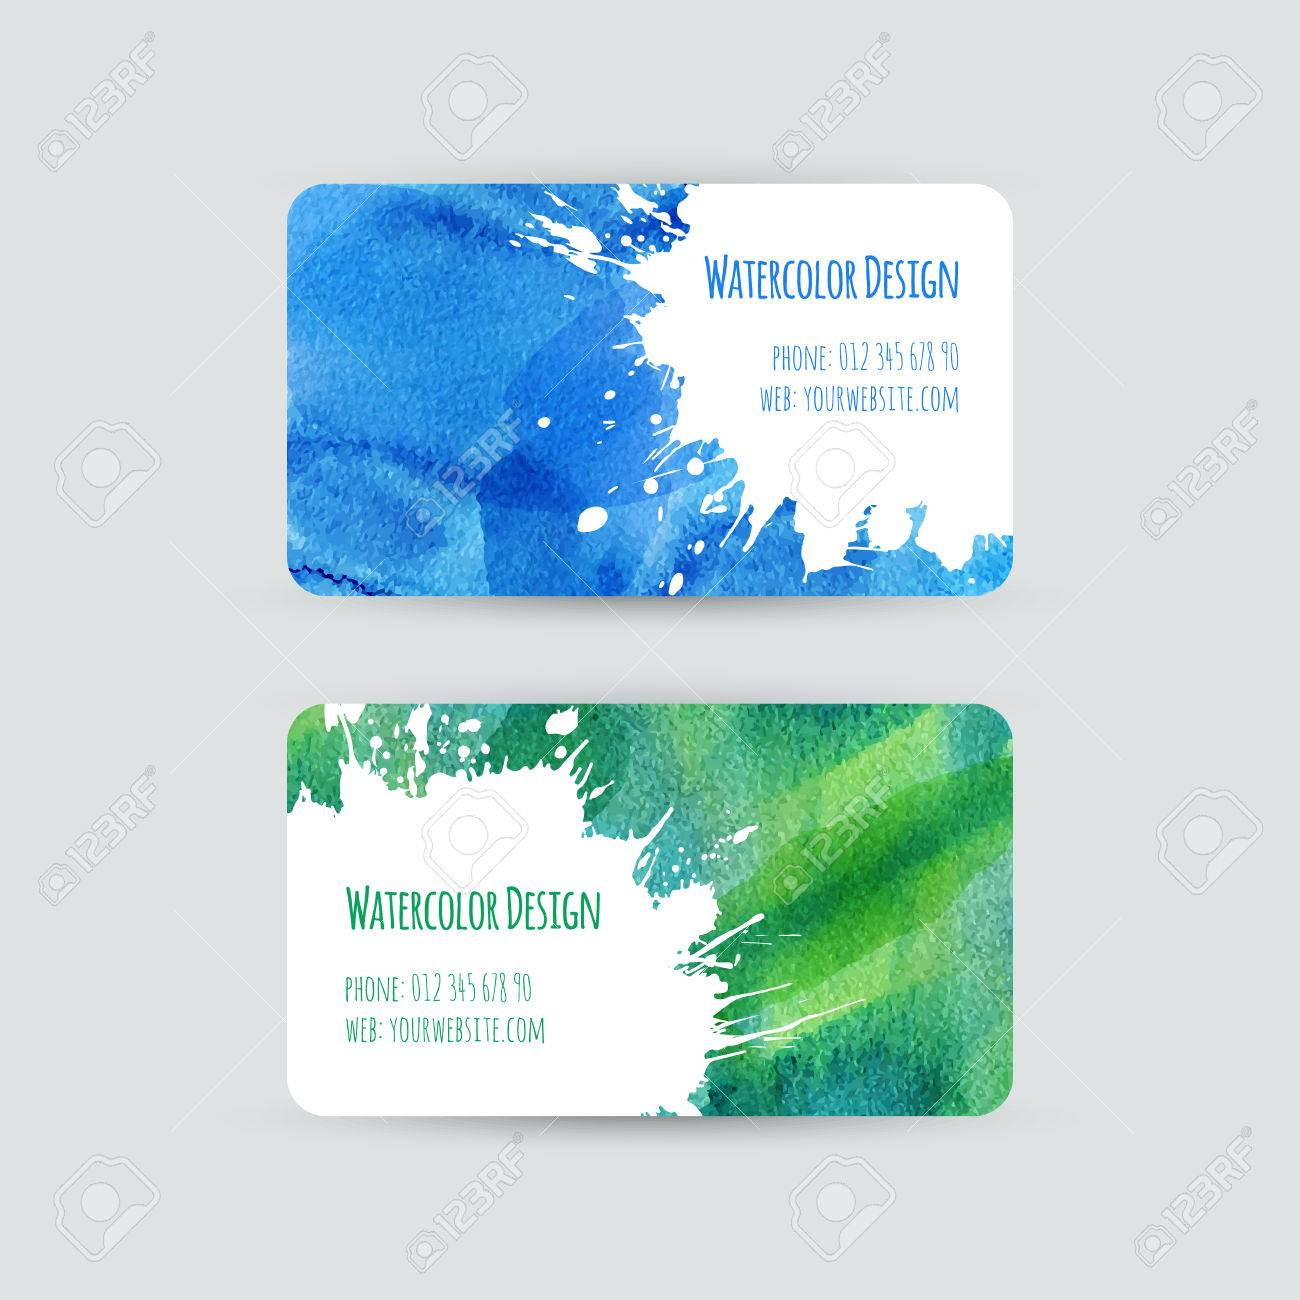 Business Cards Templates. Watercolor Design. Cards With Abstract ...